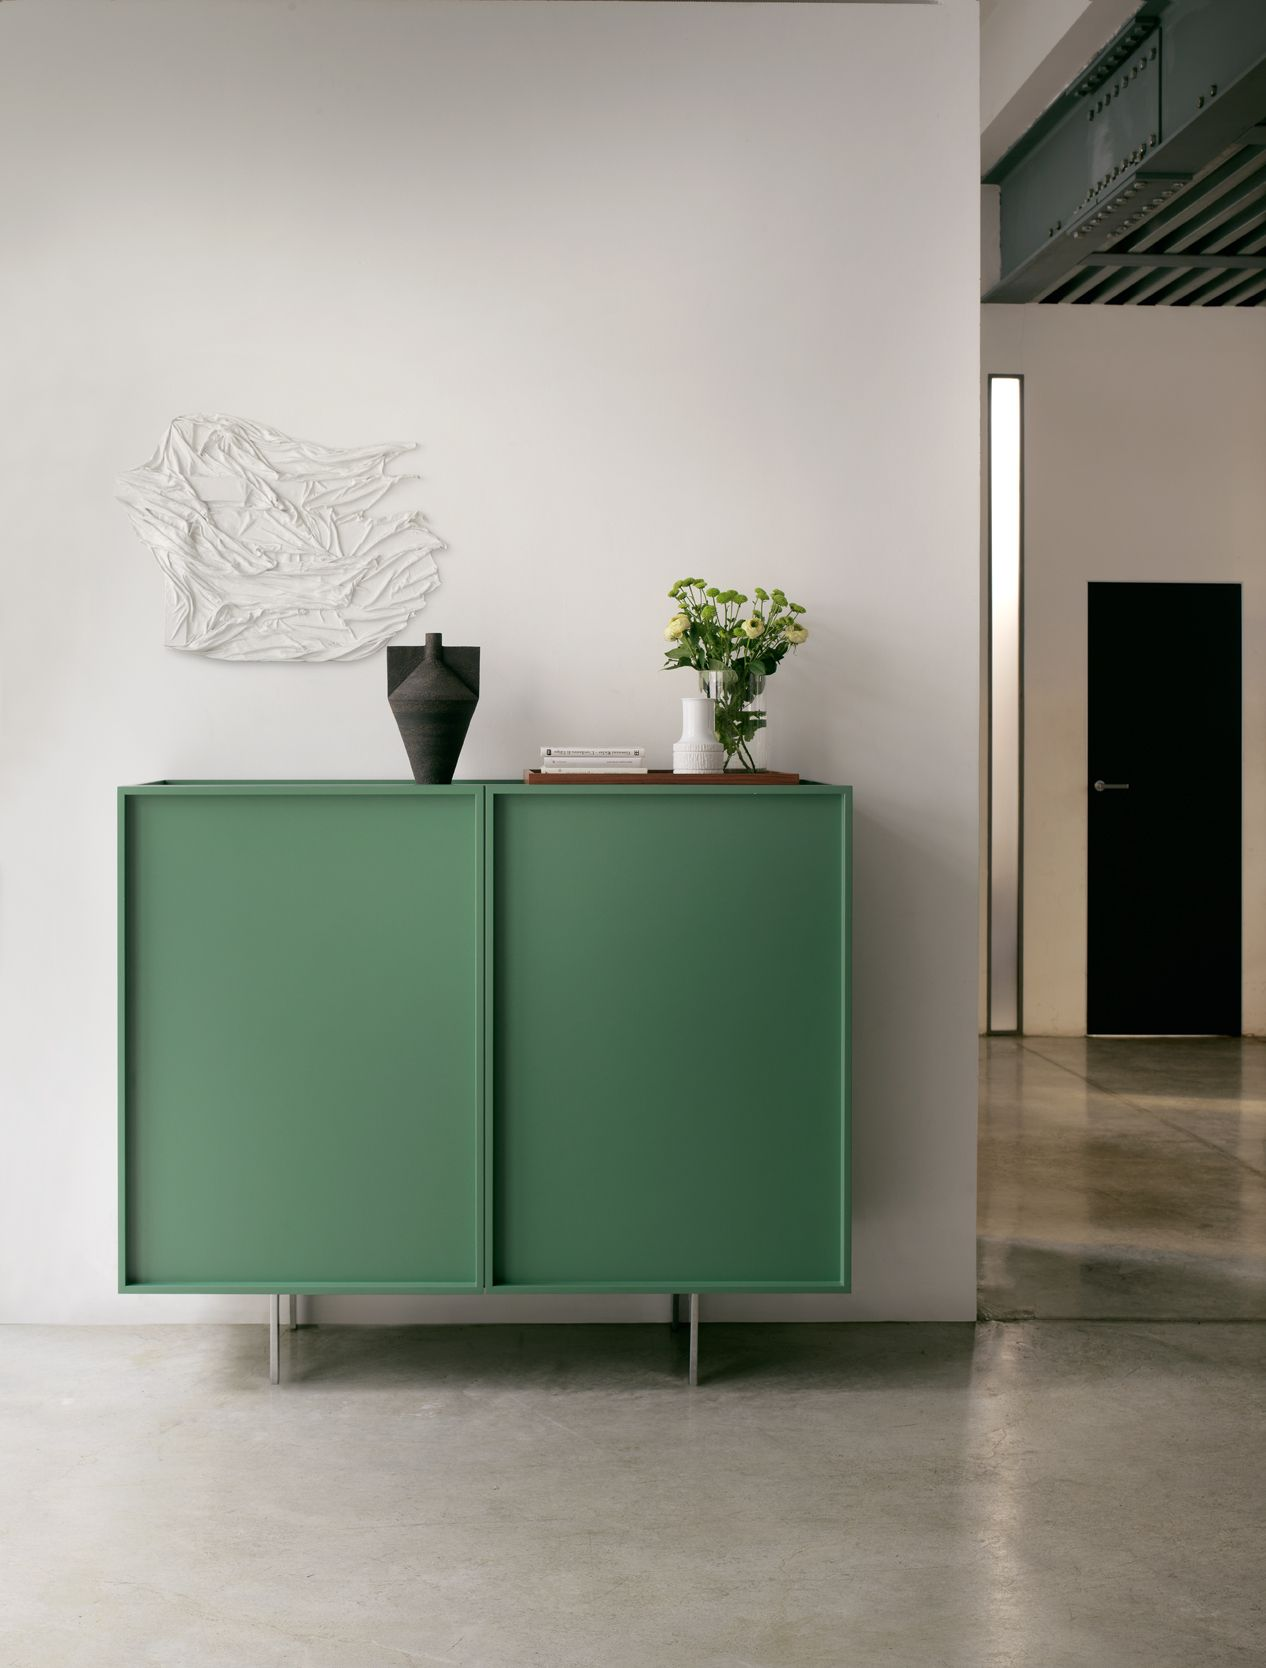 Lochness sideboard designed by piero lissoni for for Martinel mobili